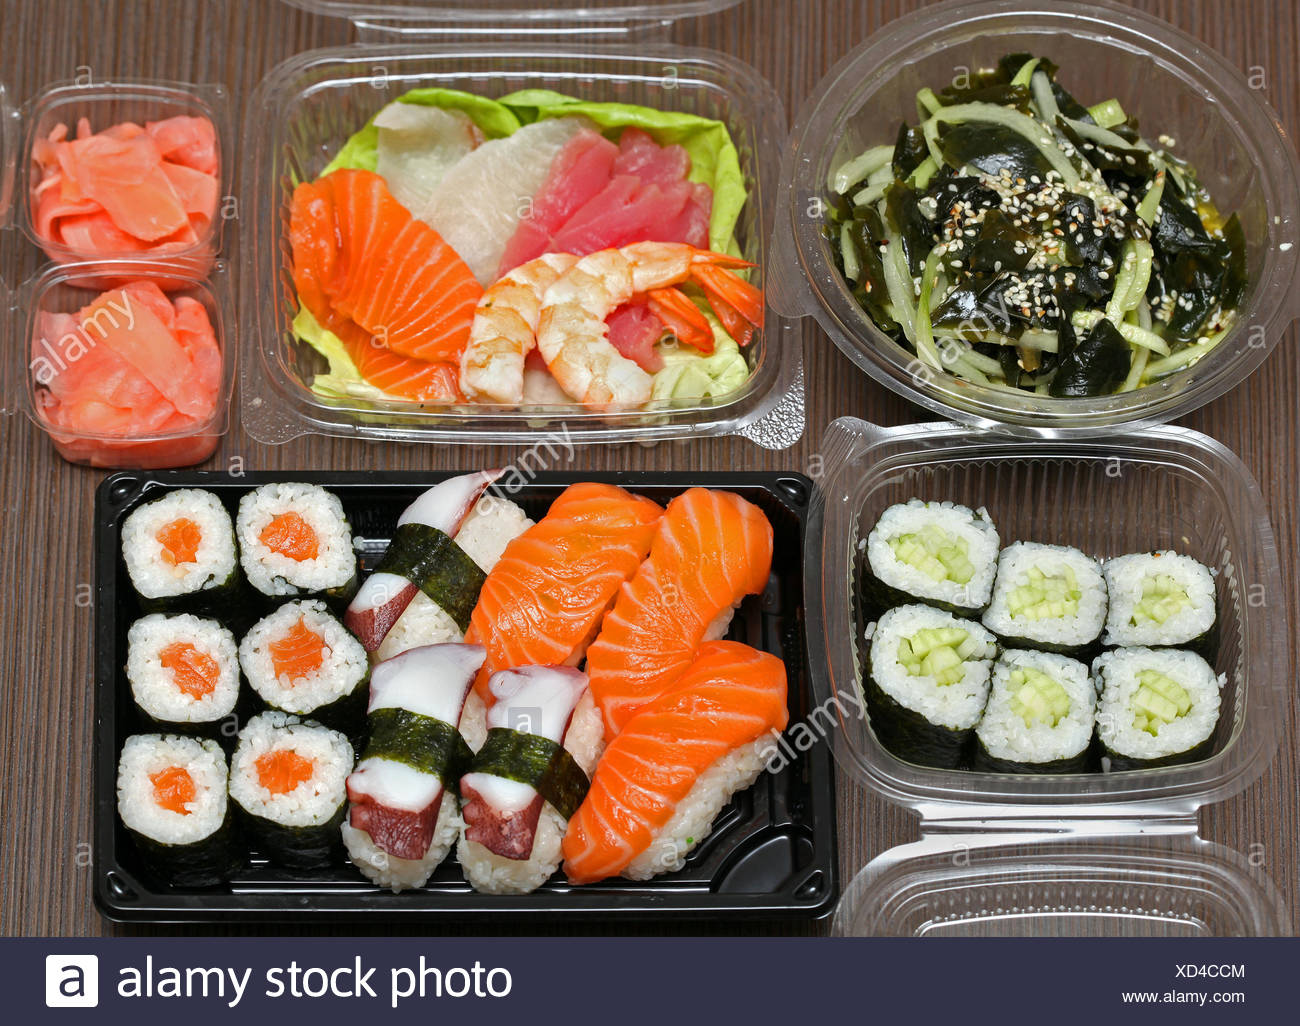 Japanese food - Stock Image